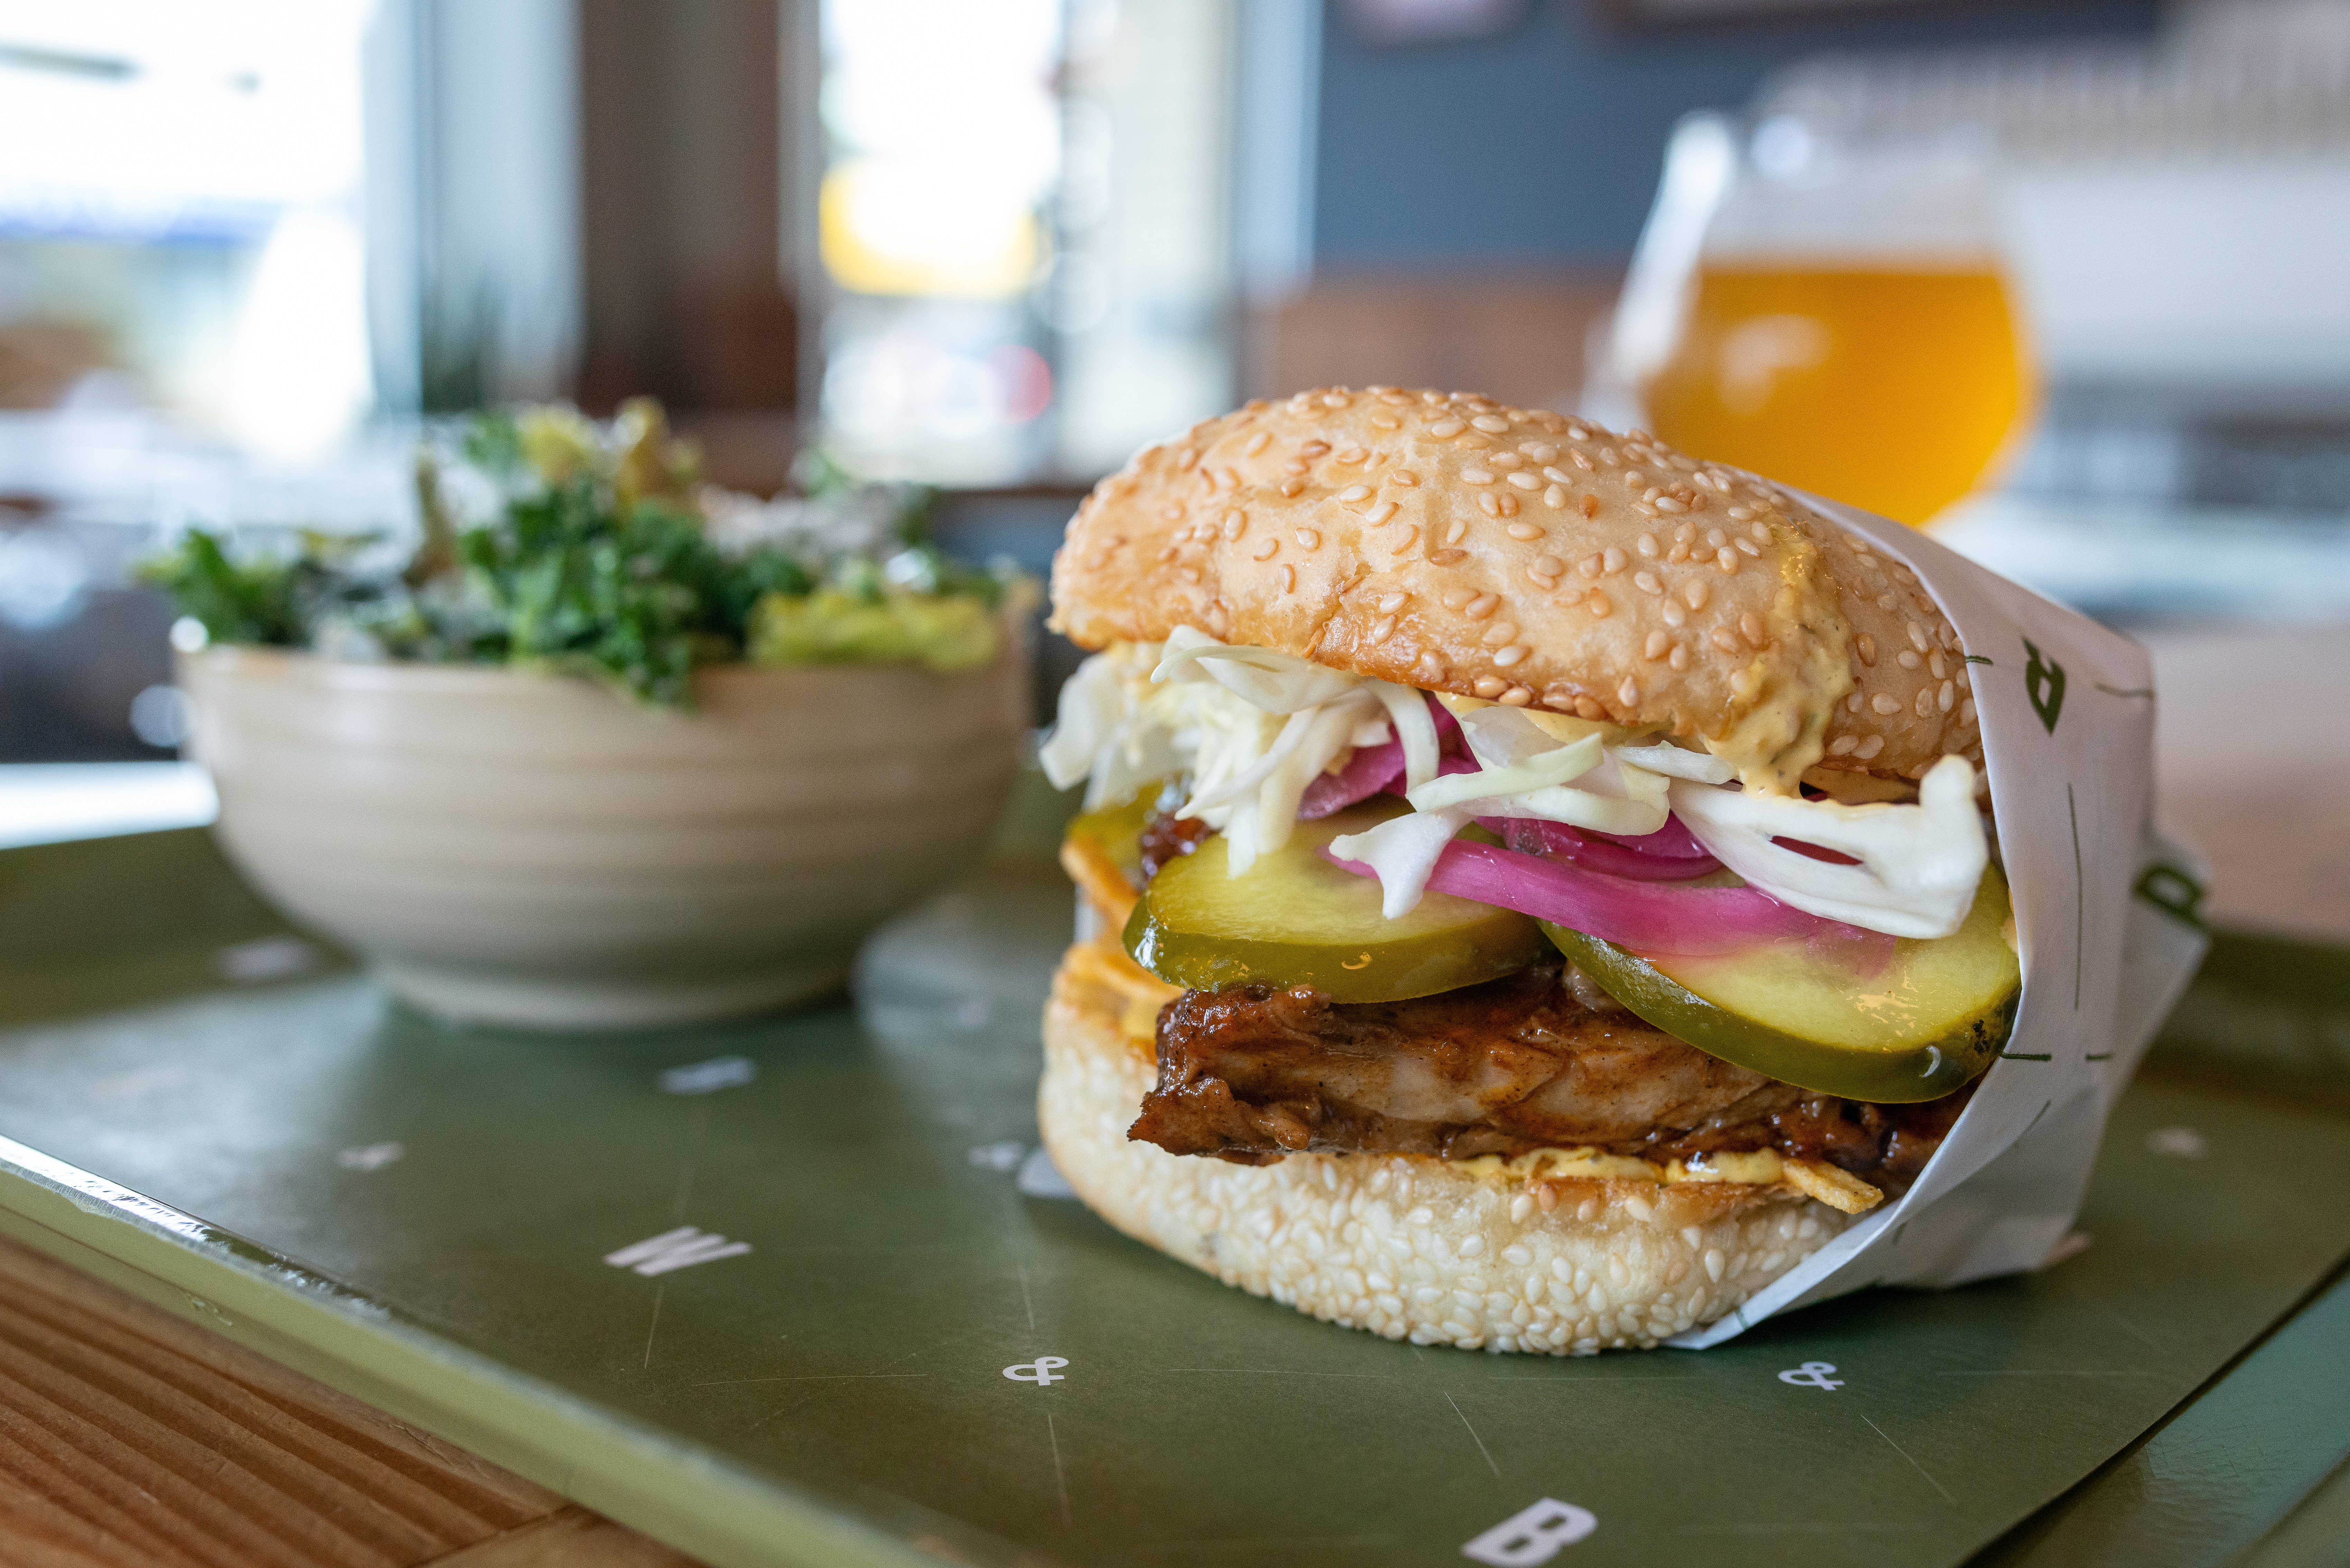 Bells and Whistles Debuts New Daily Menus, Taps New Lineup of Local Craft Beer